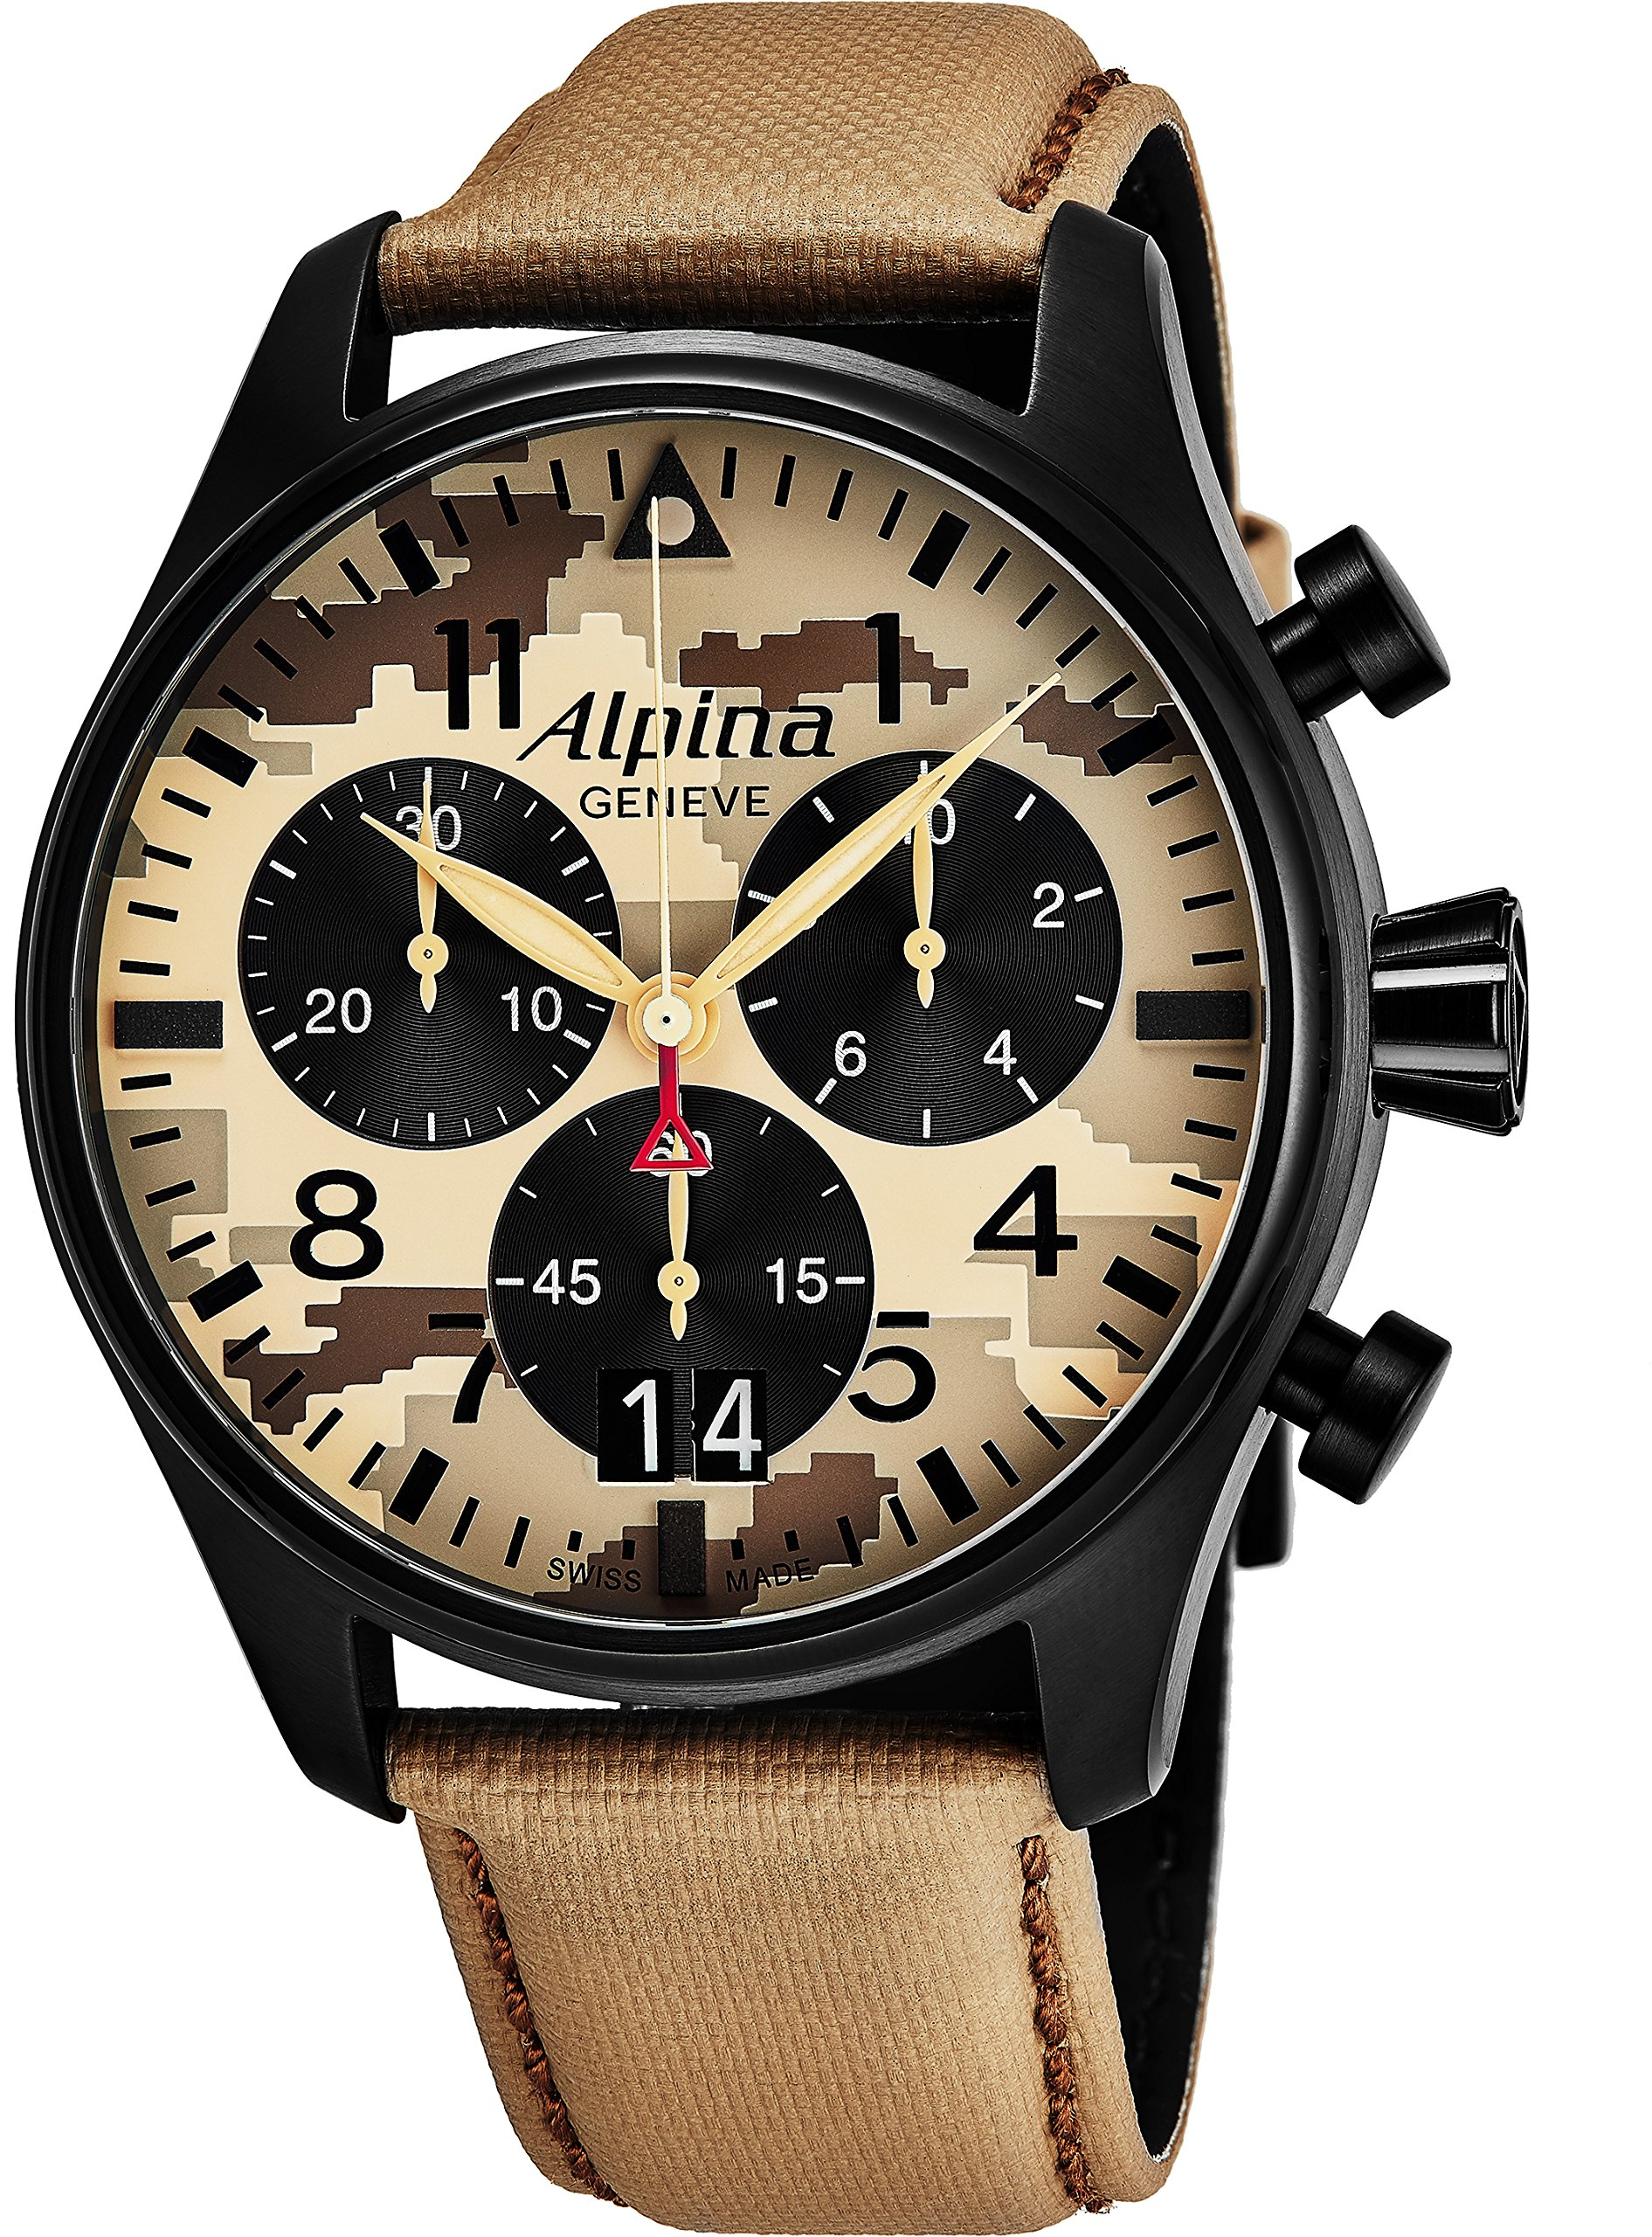 Alpina Startimer Pilot Chronograph Big Date Mens Black Stainless Steel Watch - Camouflage Face Brown Leather Band Analog Swiss Quartz Chronograph Watch For Men AL-372MLY4FBS6